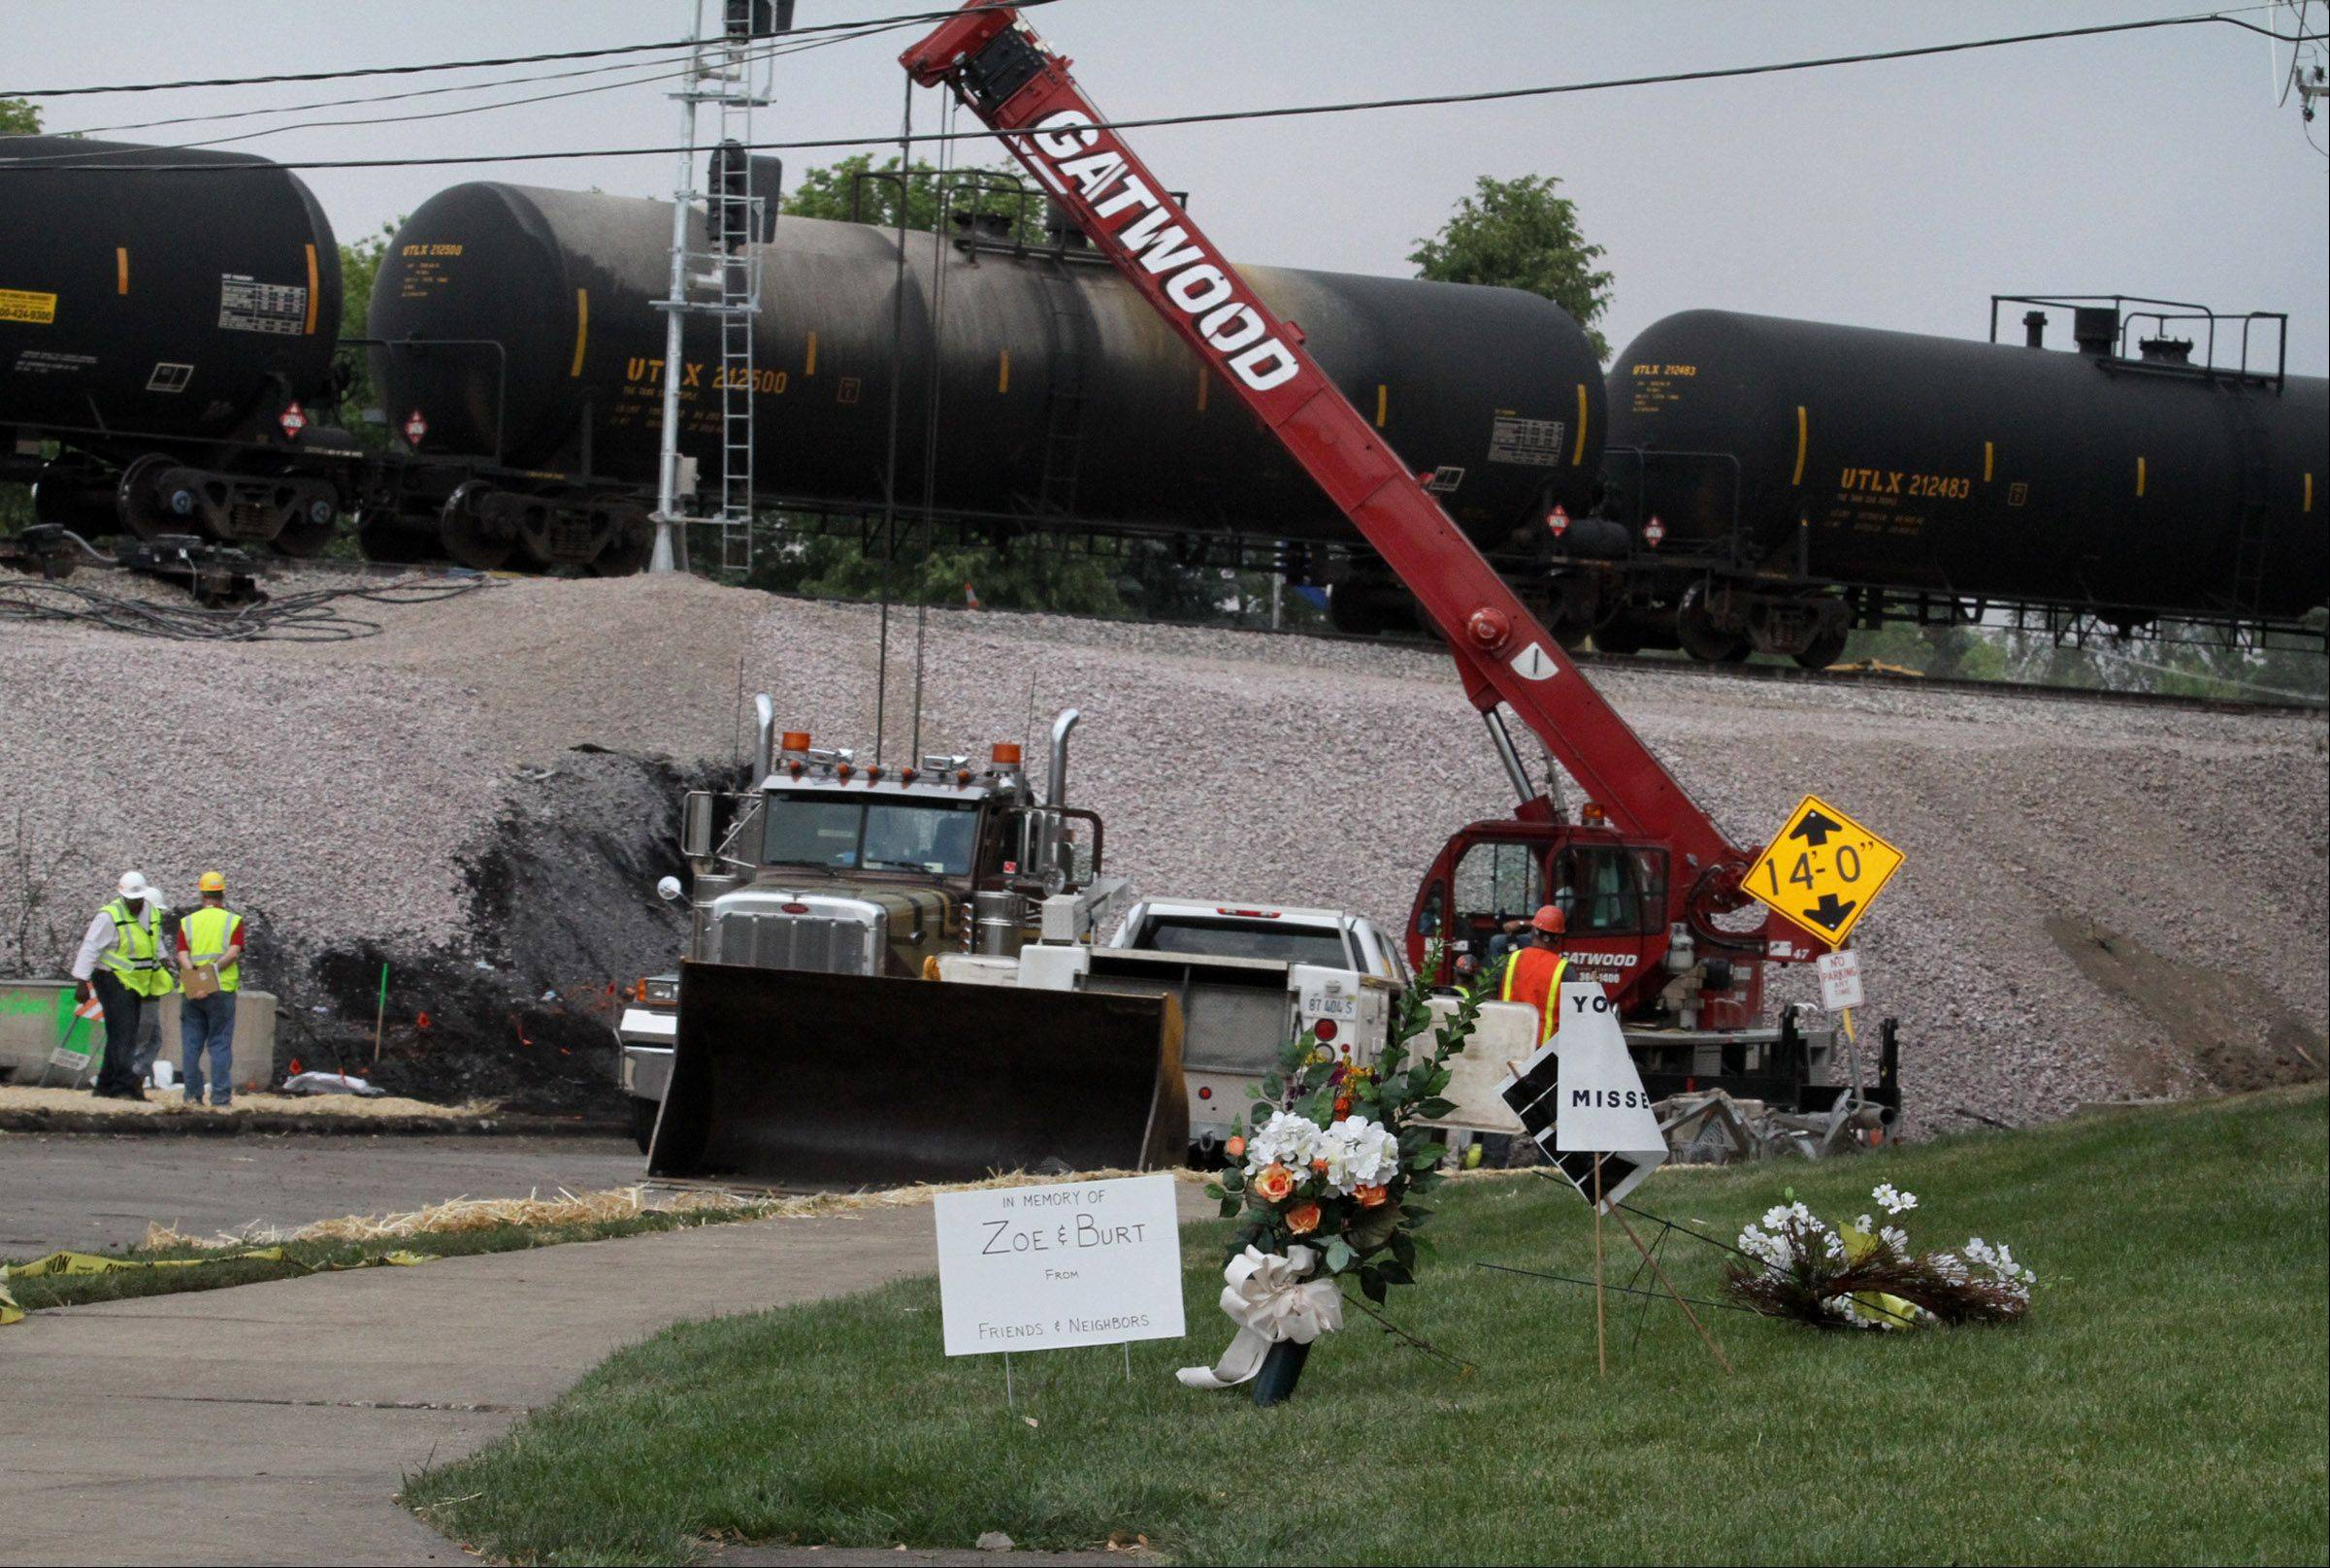 Work continued in Glenview Friday at the site of the July 4 train derailment that collapsed the railroad viaduct at Shermer Road. Union Pacific Railroad poured a temporary gravel bridge with tracks running over it until the bridge can be rebuilt.